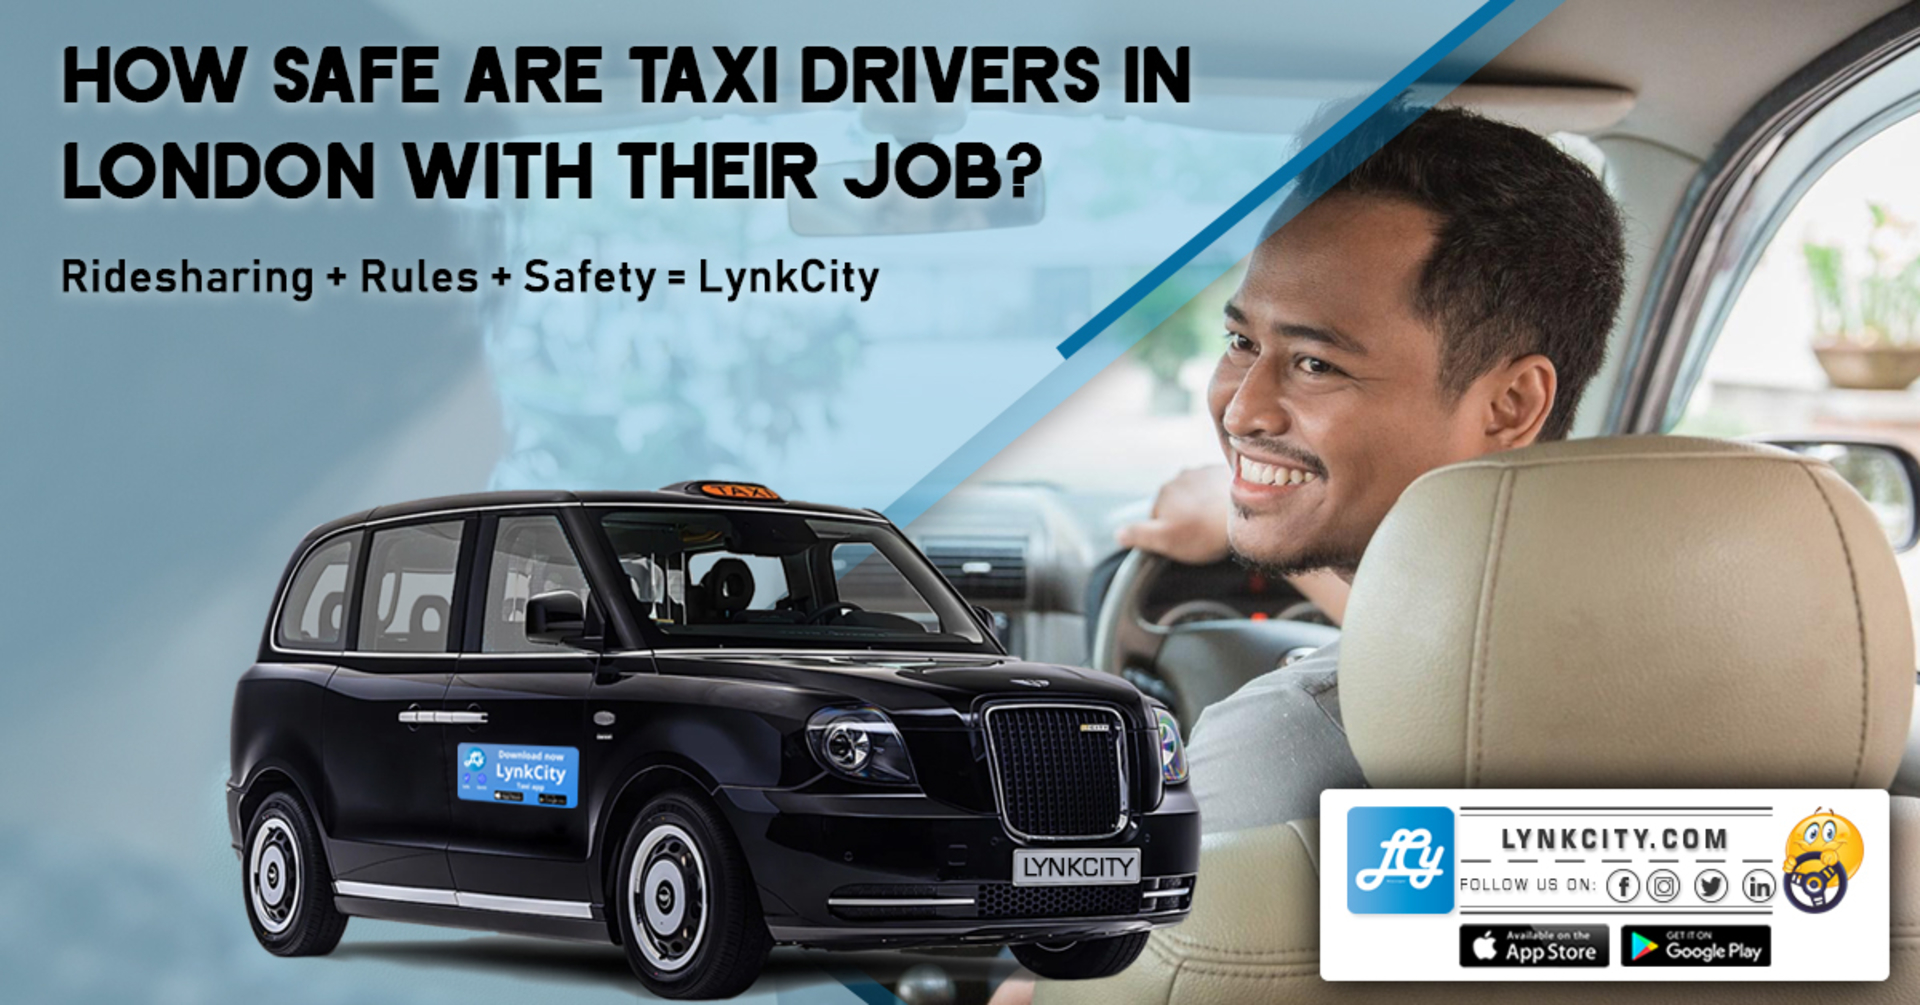 How Safe Are Taxi Drivers in London with Their Job? image